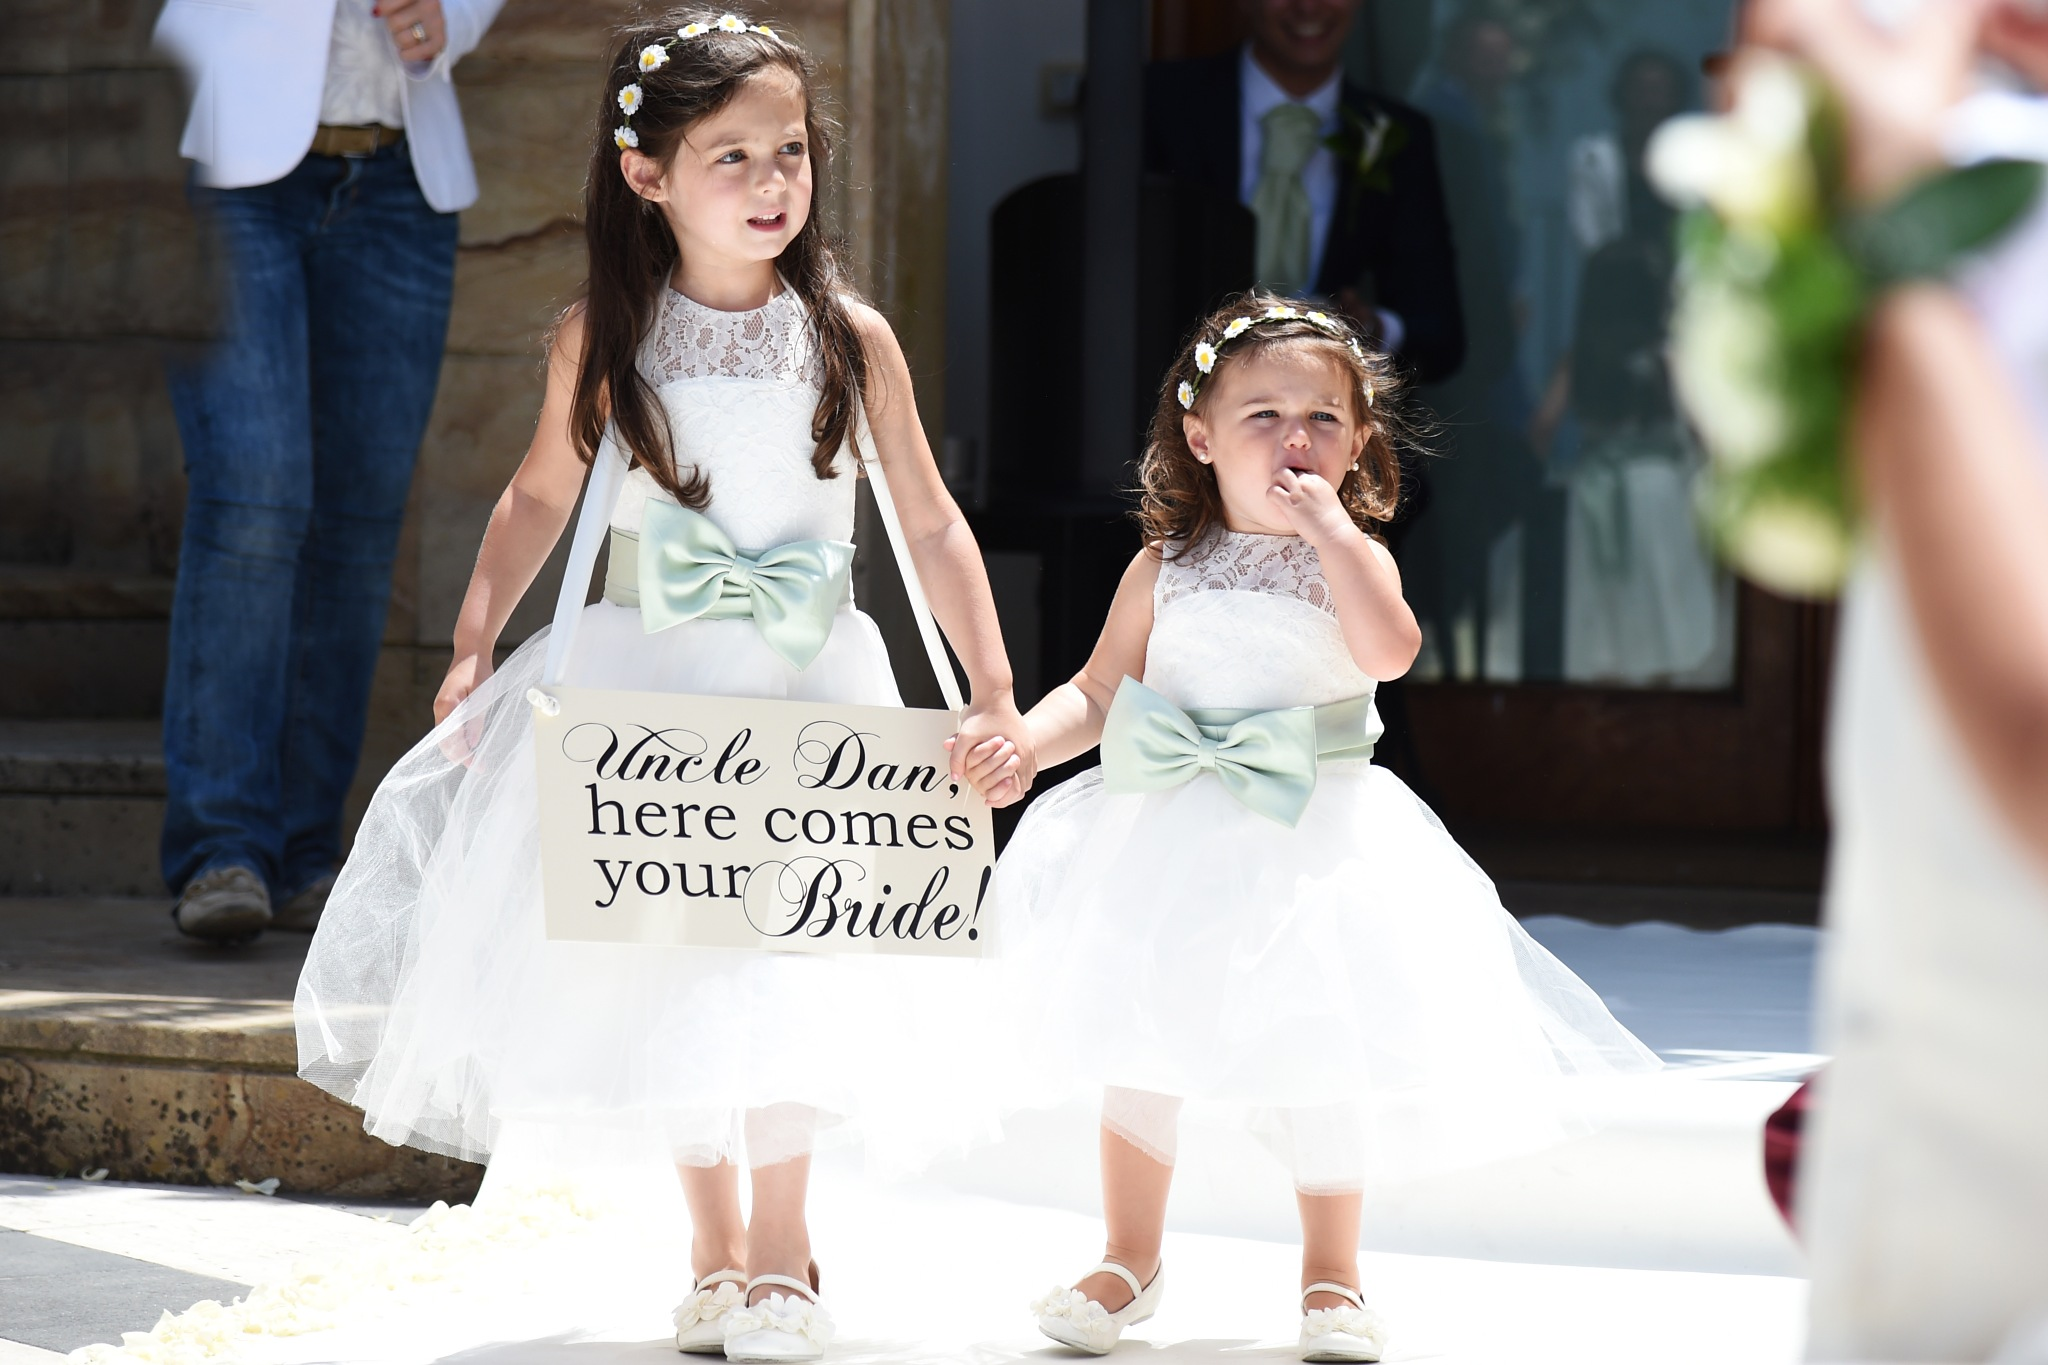 Uncle Dan, here comes your Bride! by Foto Aminta Sorrento -  Positano